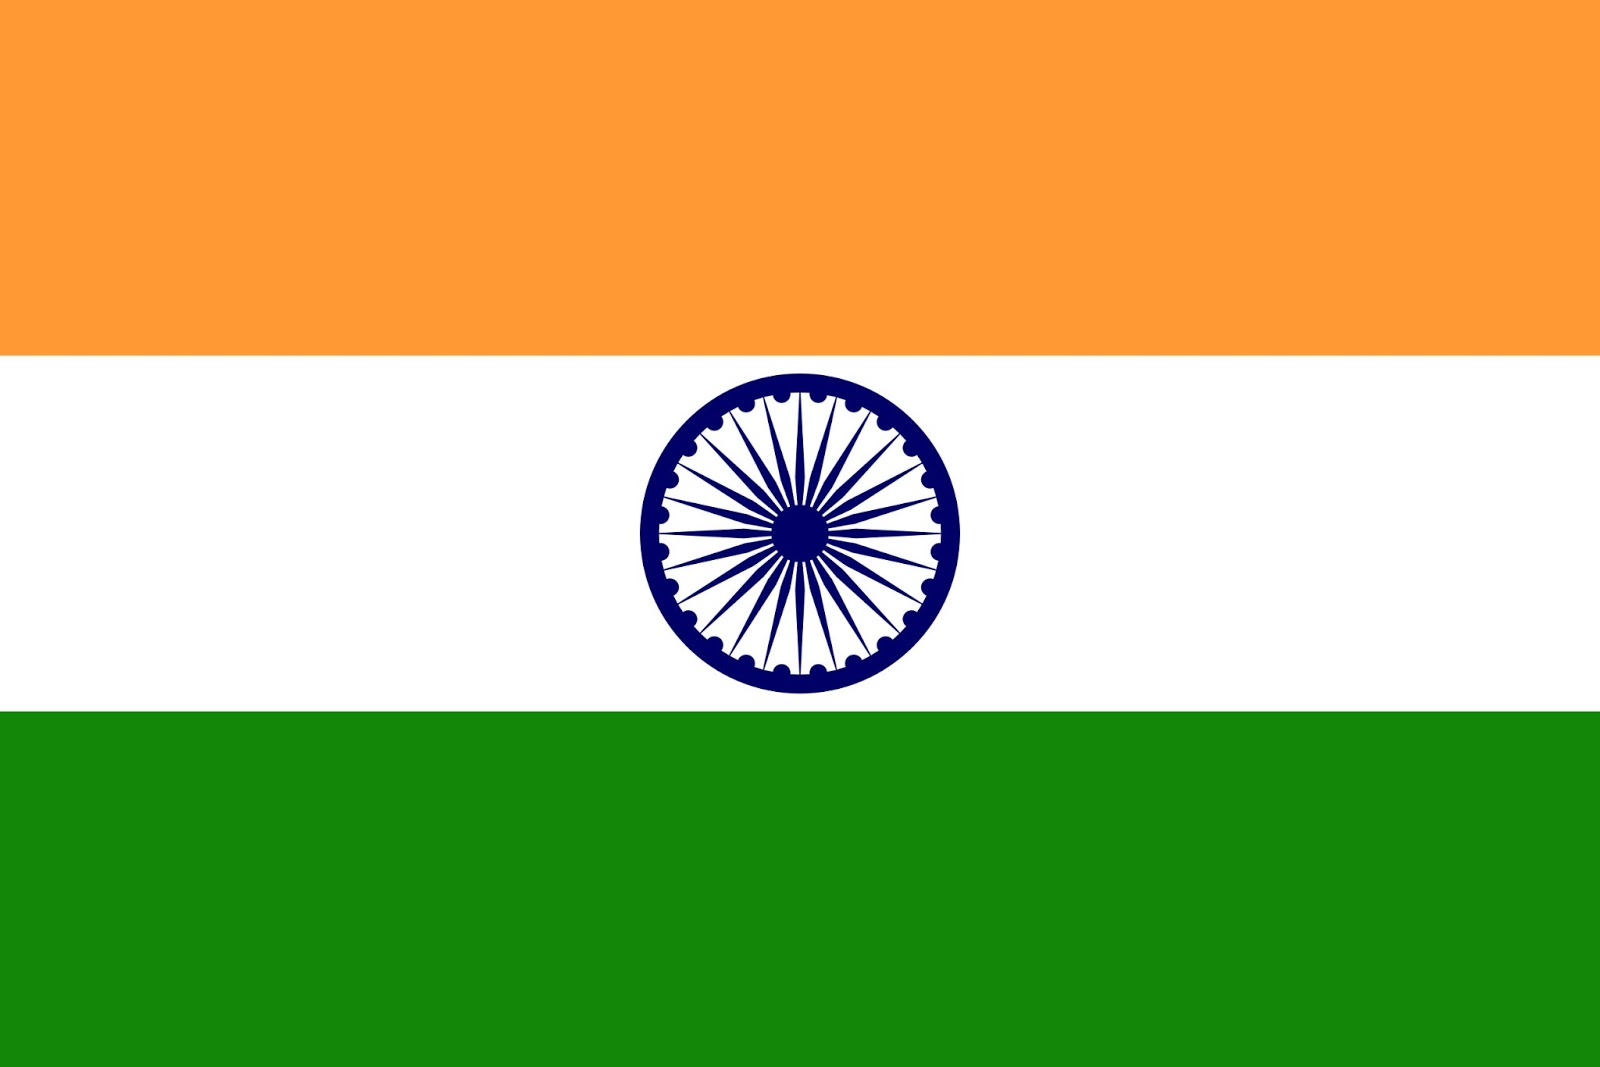 Stylish Indian Flag For Happy Independence Day Wishes Hd